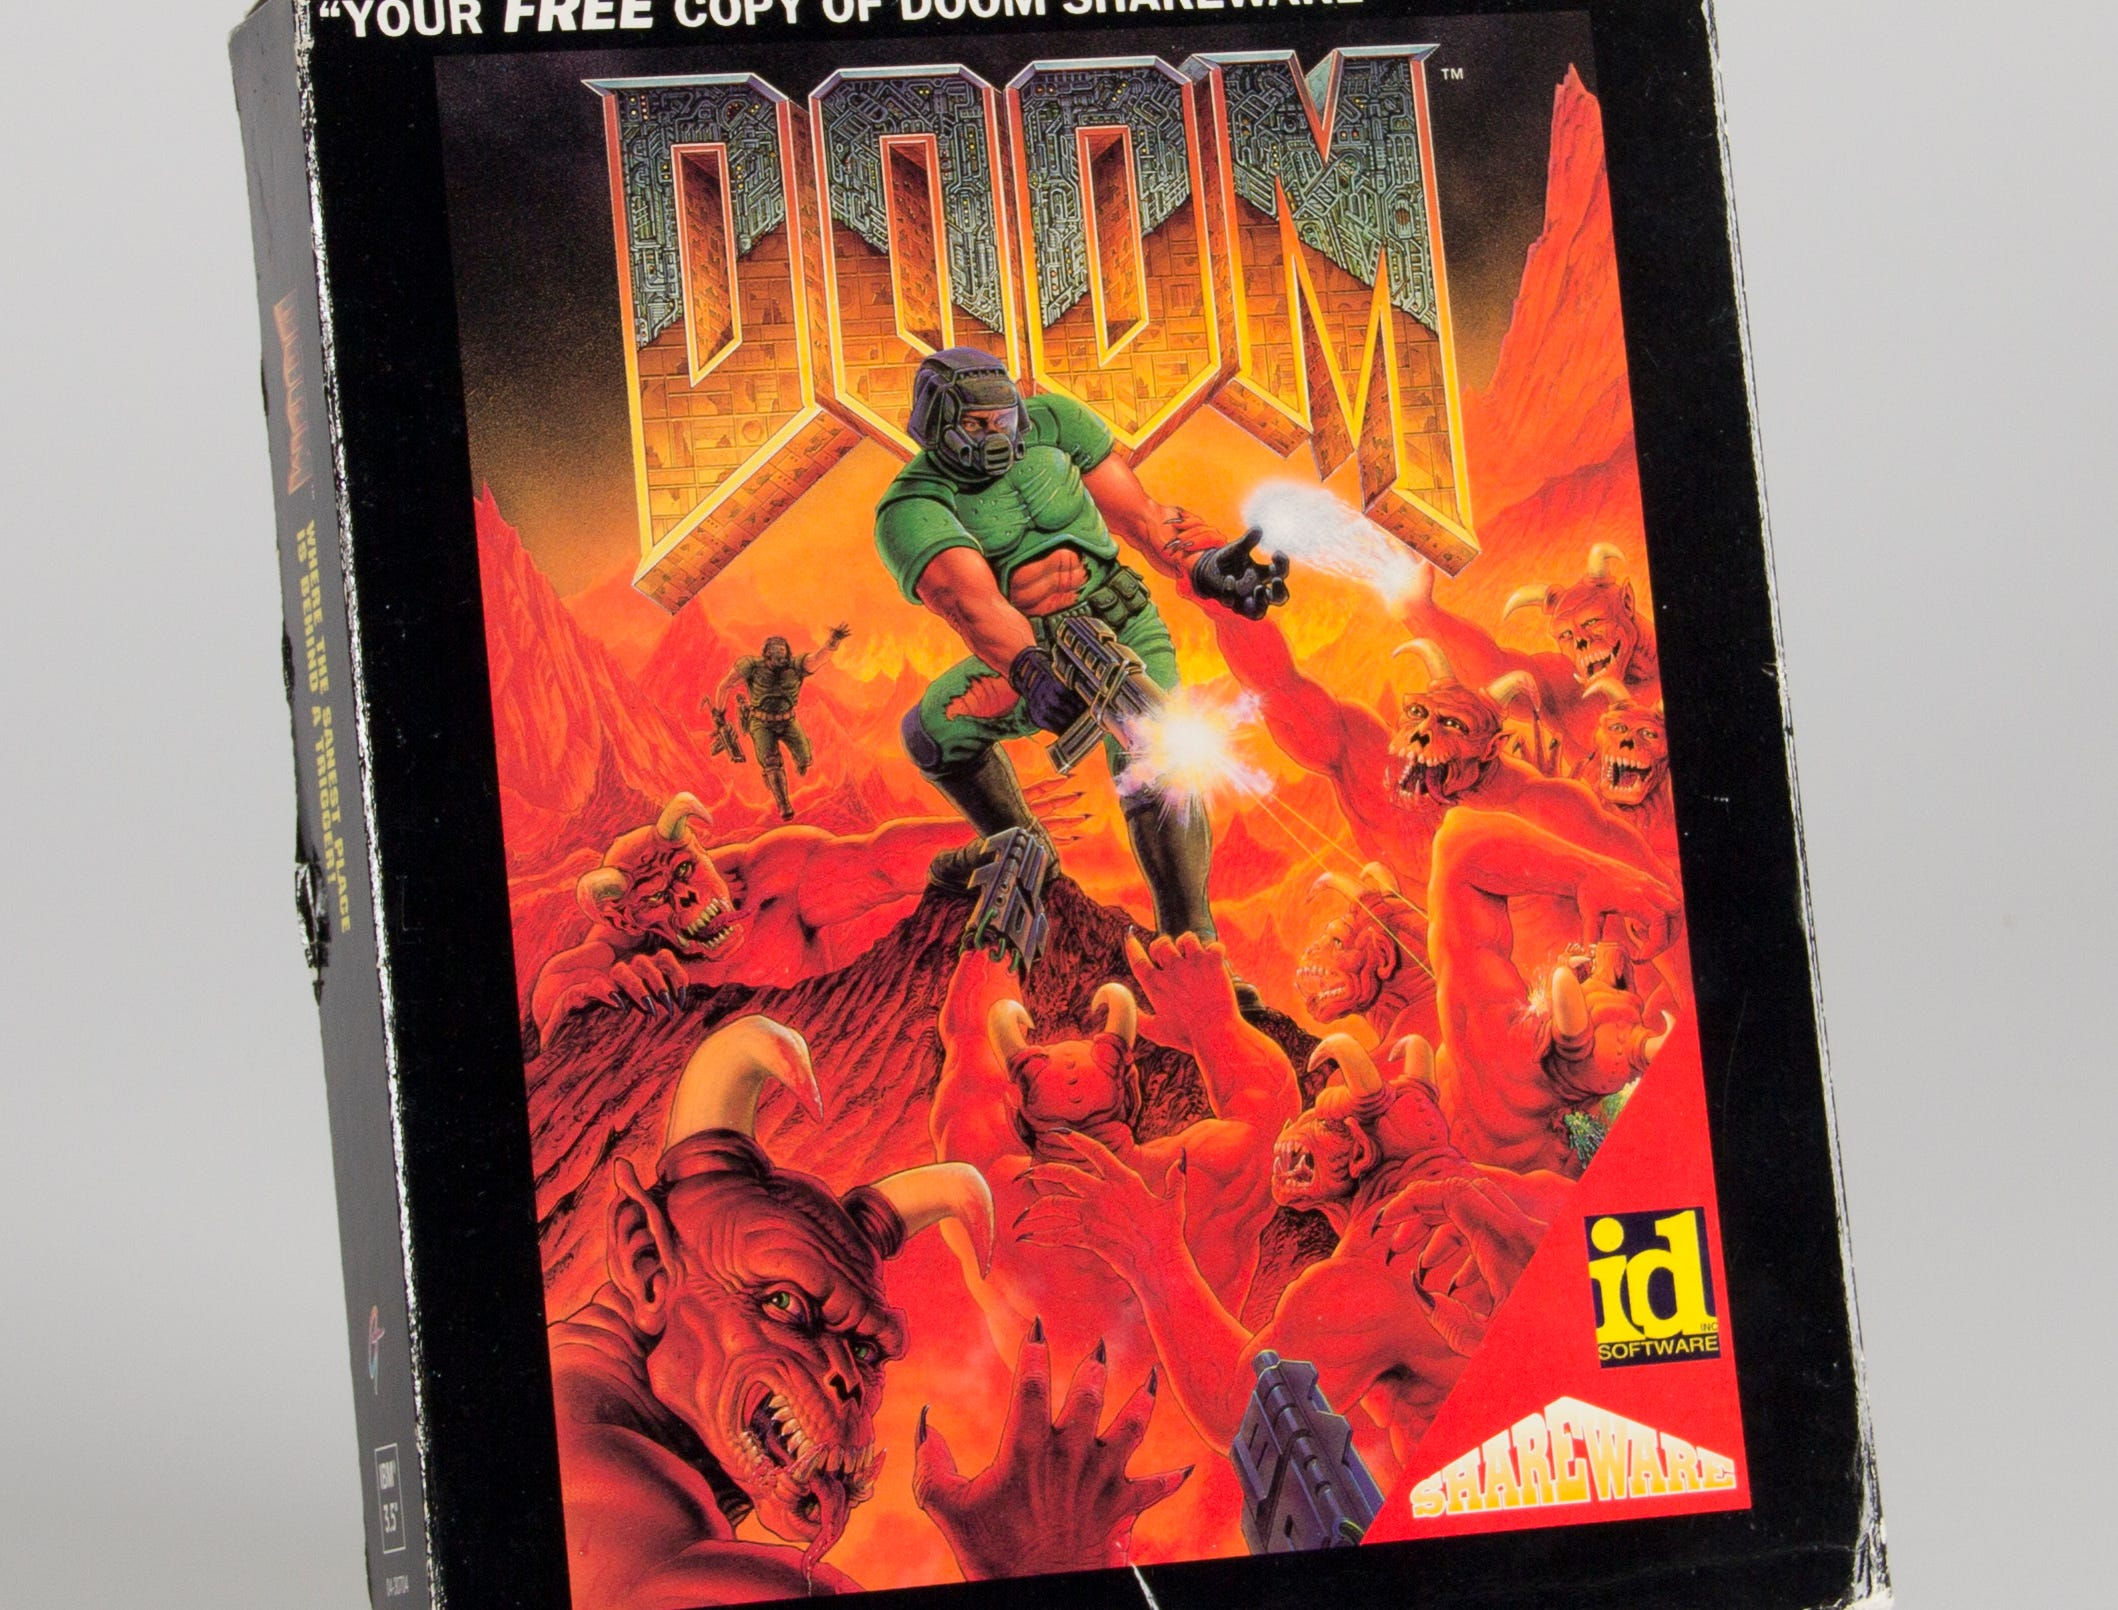 DOOM was inducted into the World Video Game Hall of Fame at The Strong National Museum of Play in Rochester, New York in 2015.